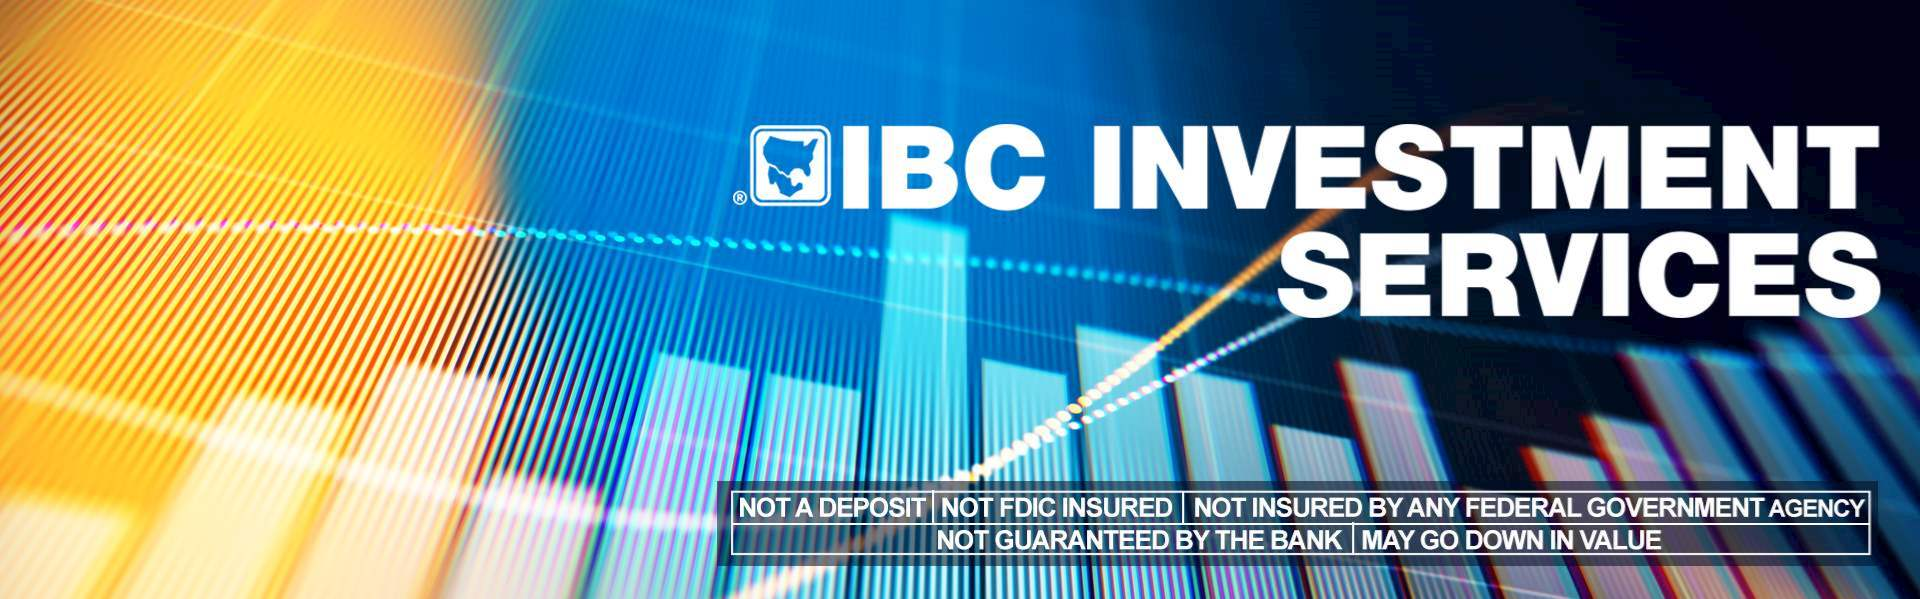 IBC Bank Business Investments